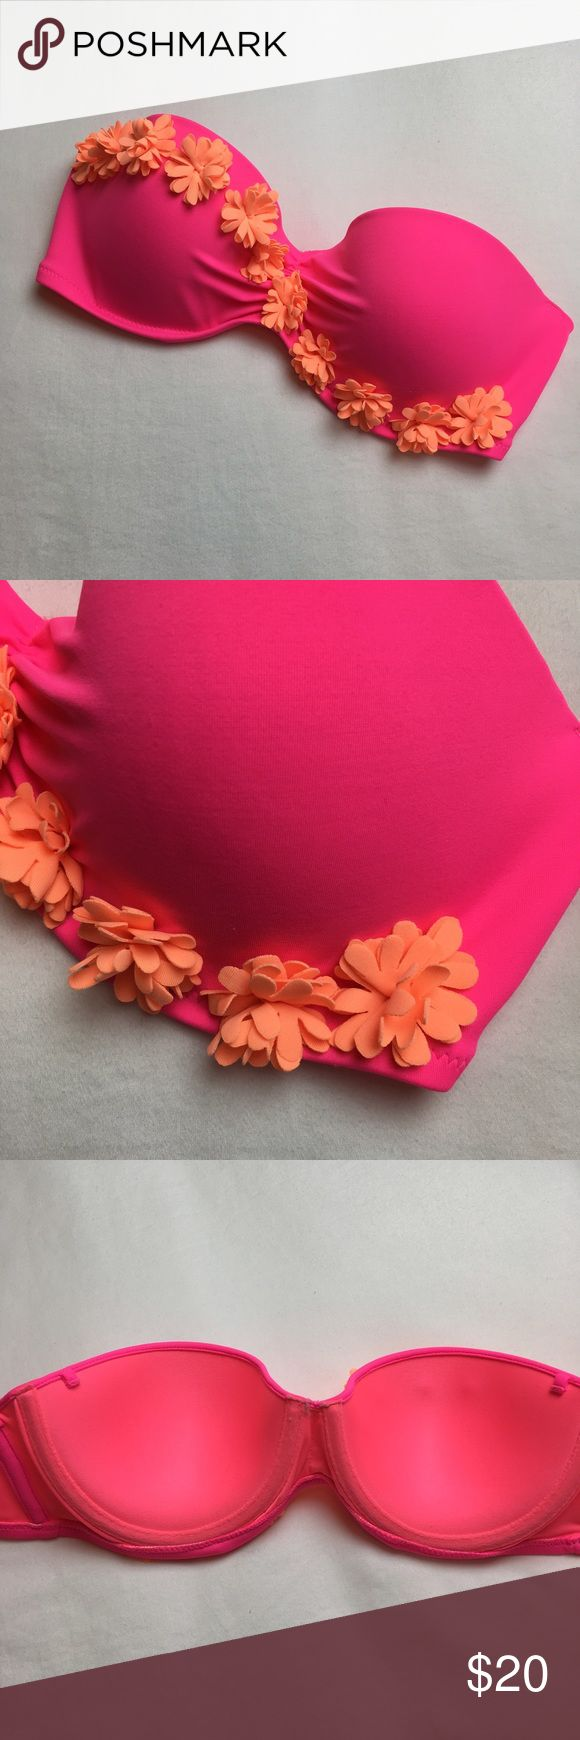 Pink and orange bandeau VS bikini top 32D Excellent condition, but does not come with strap. Hot pink with orange flowers. Size 32D. Top only. Last picture is to show fit only. Reasonable offers welcome! Victoria's Secret Swim Bikinis